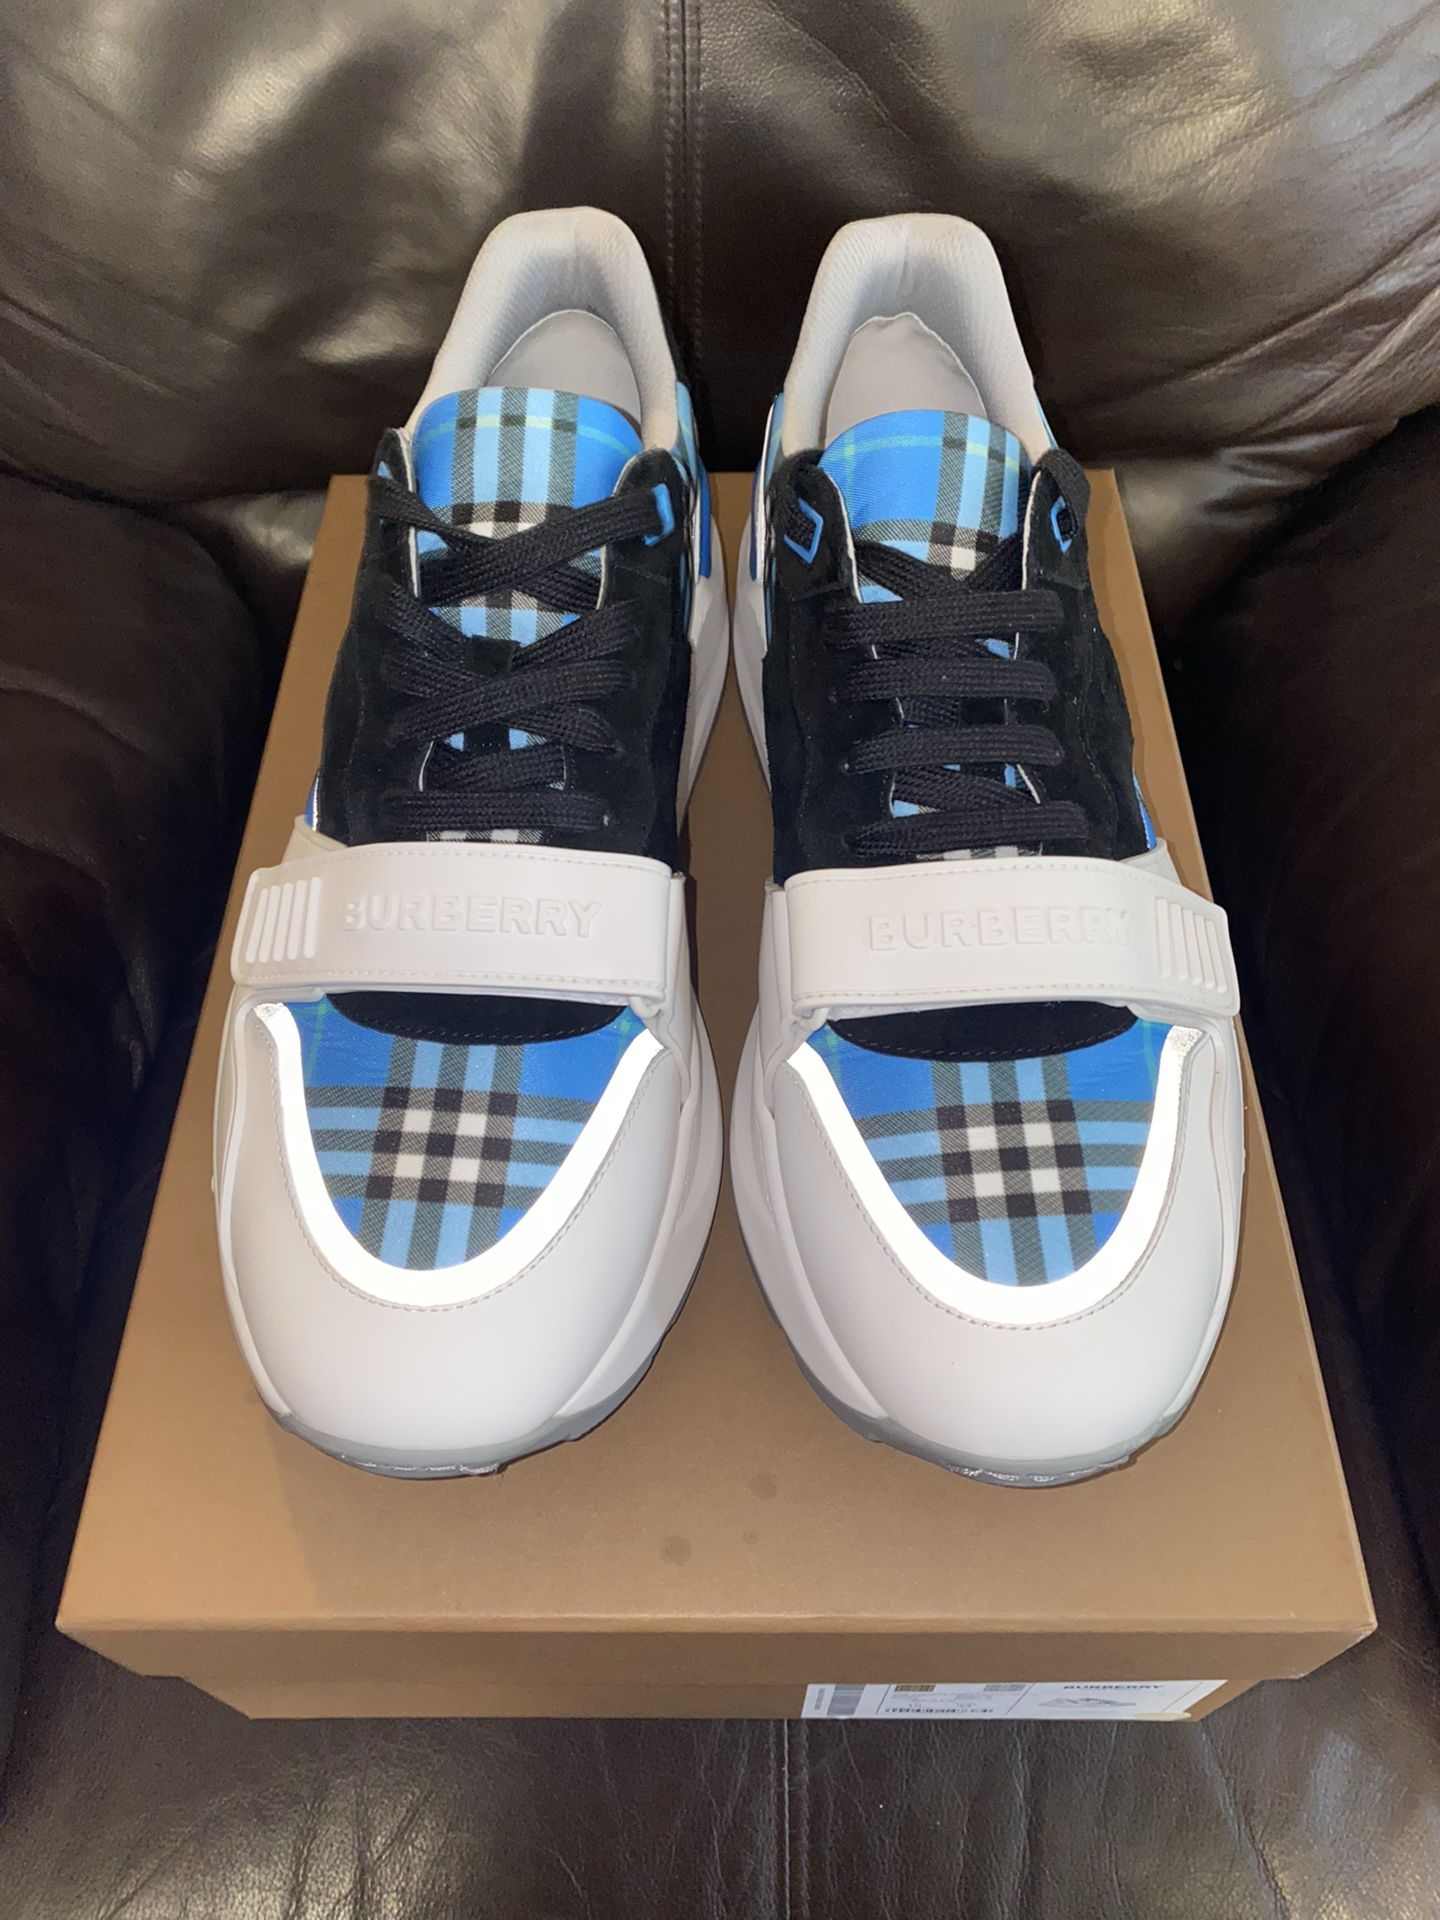 Burberry Shoes For Sale !!!!